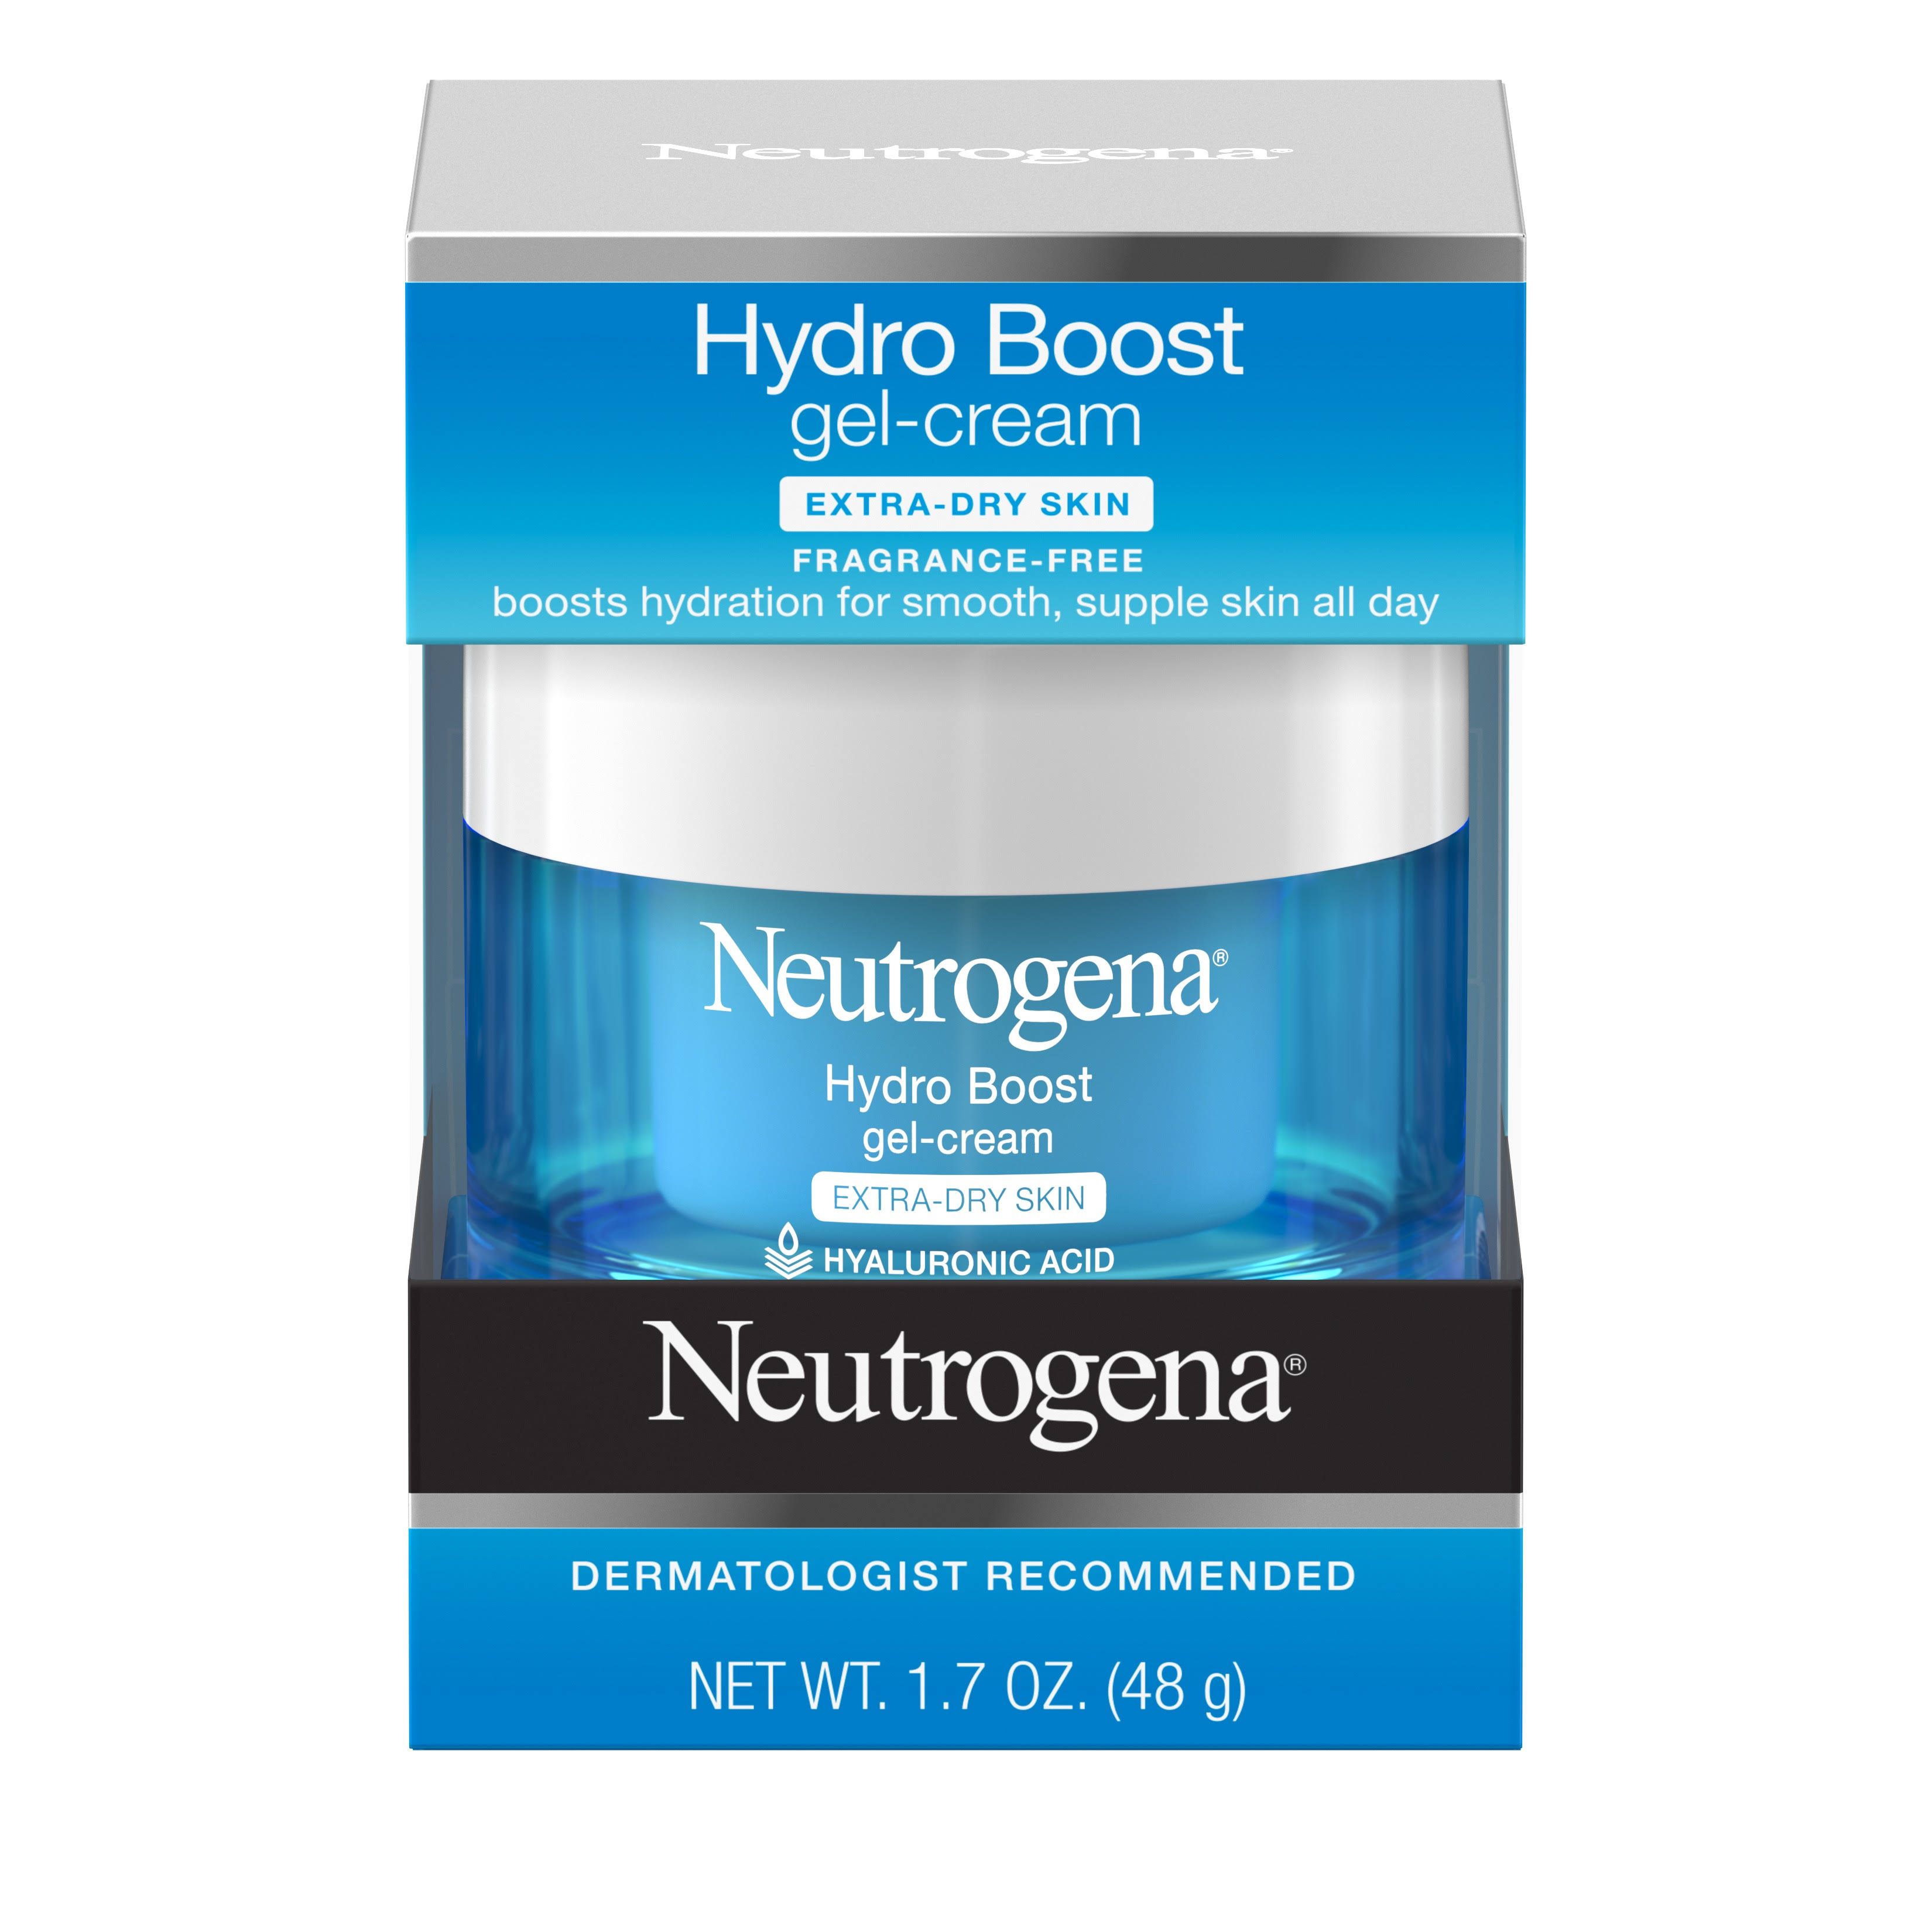 Neutrogena Hydro Boost Gel Cream - Extra Dry Skin, 1.7oz